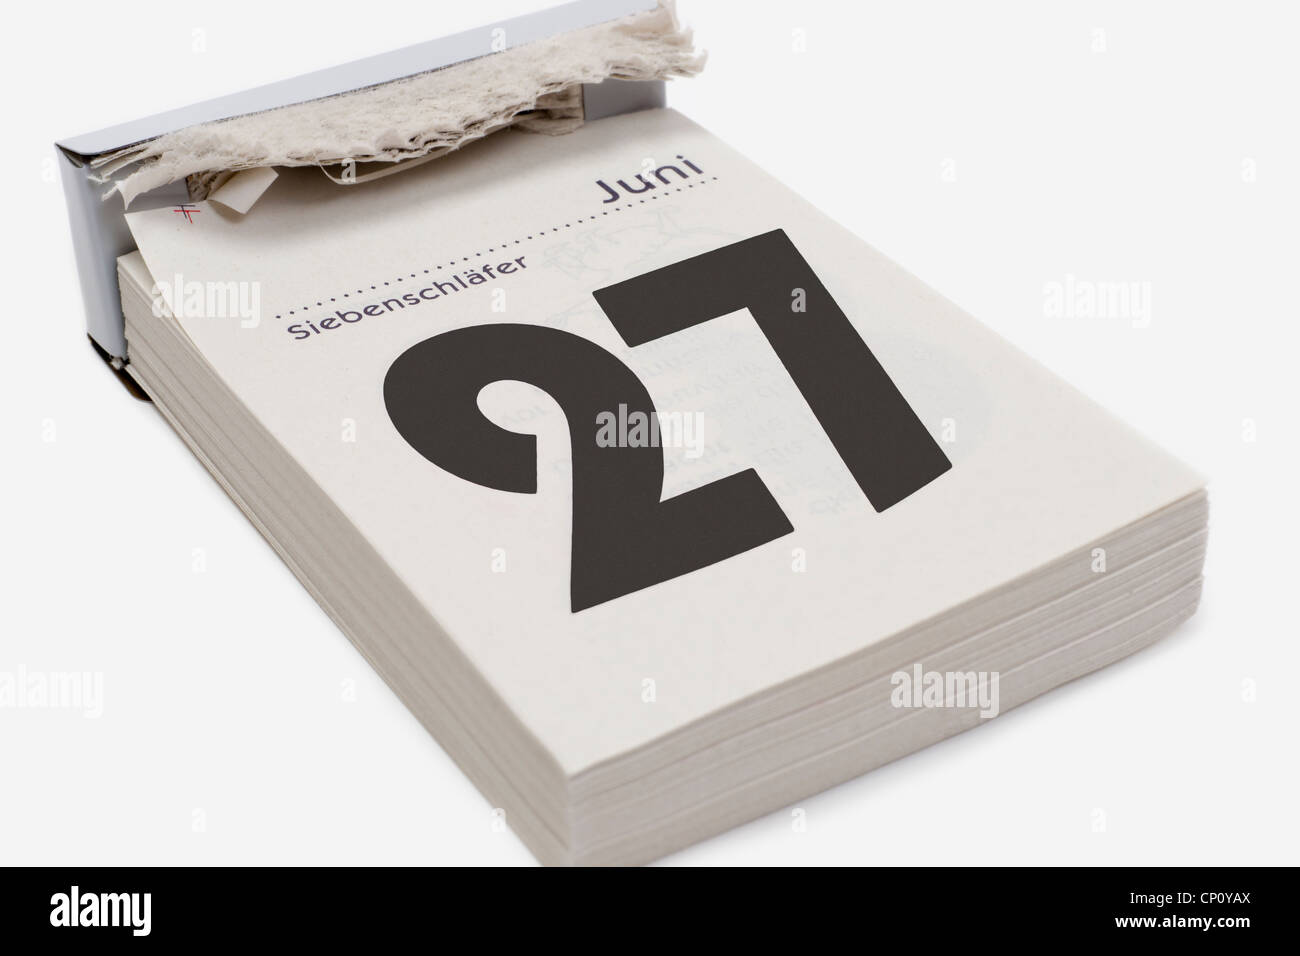 A calendar sheet shows June 27th. In Germany, June 27th is Siebenschläfertag (Seven Sleepers Day). - Stock Image